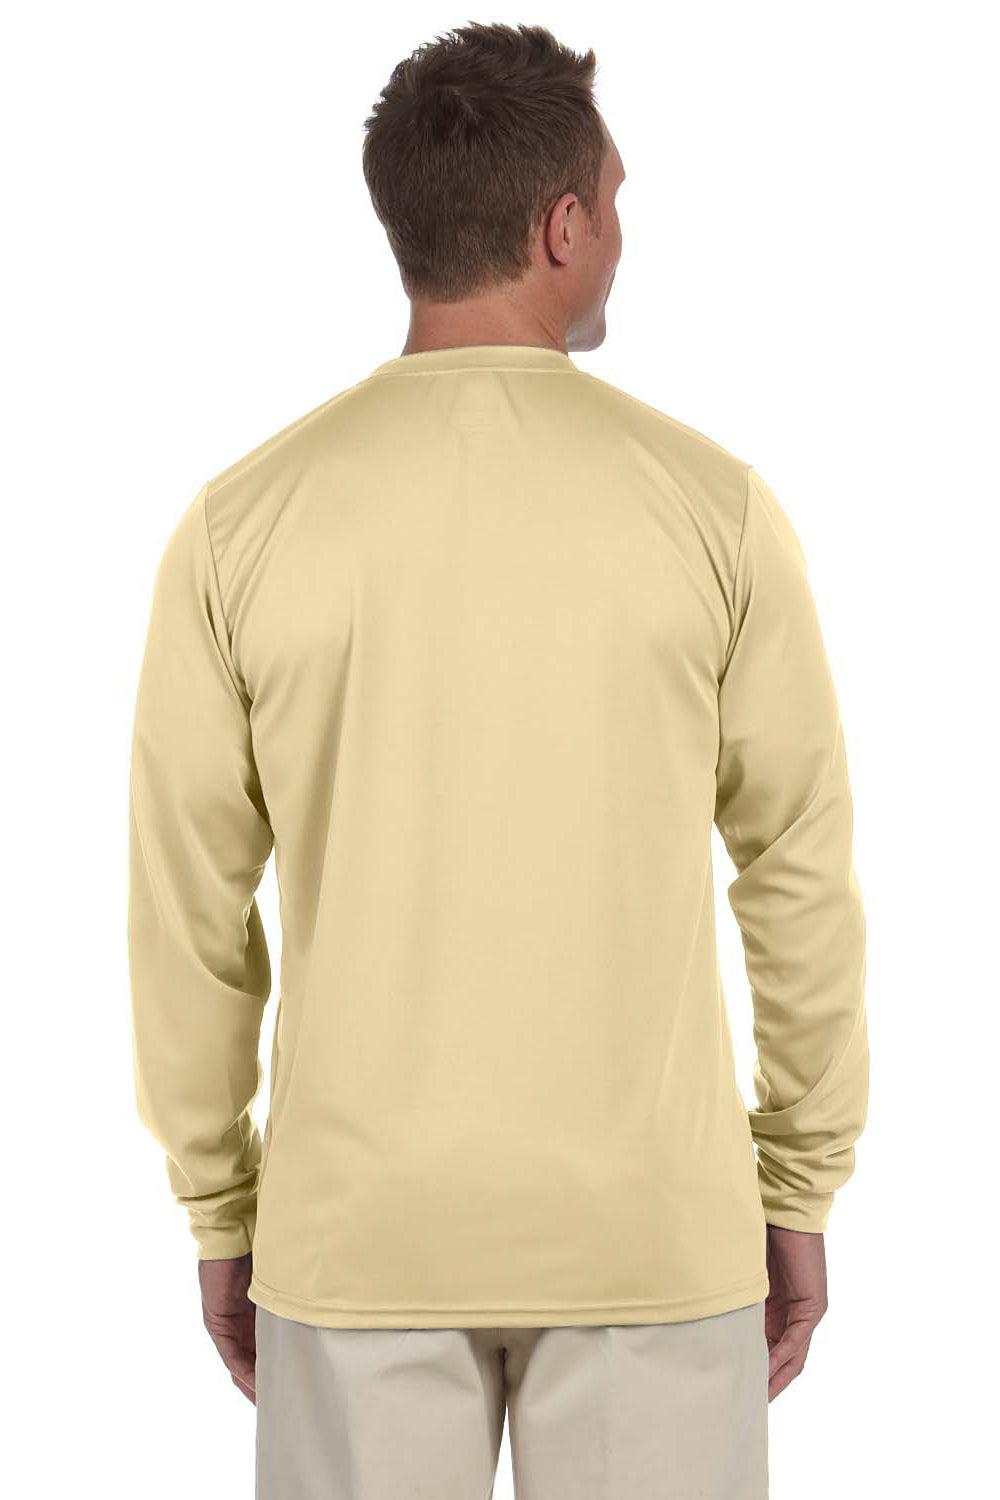 Augusta Sportswear 788 Mens Moisture Wicking Long Sleeve Crewneck T-Shirt Vegas Gold Back